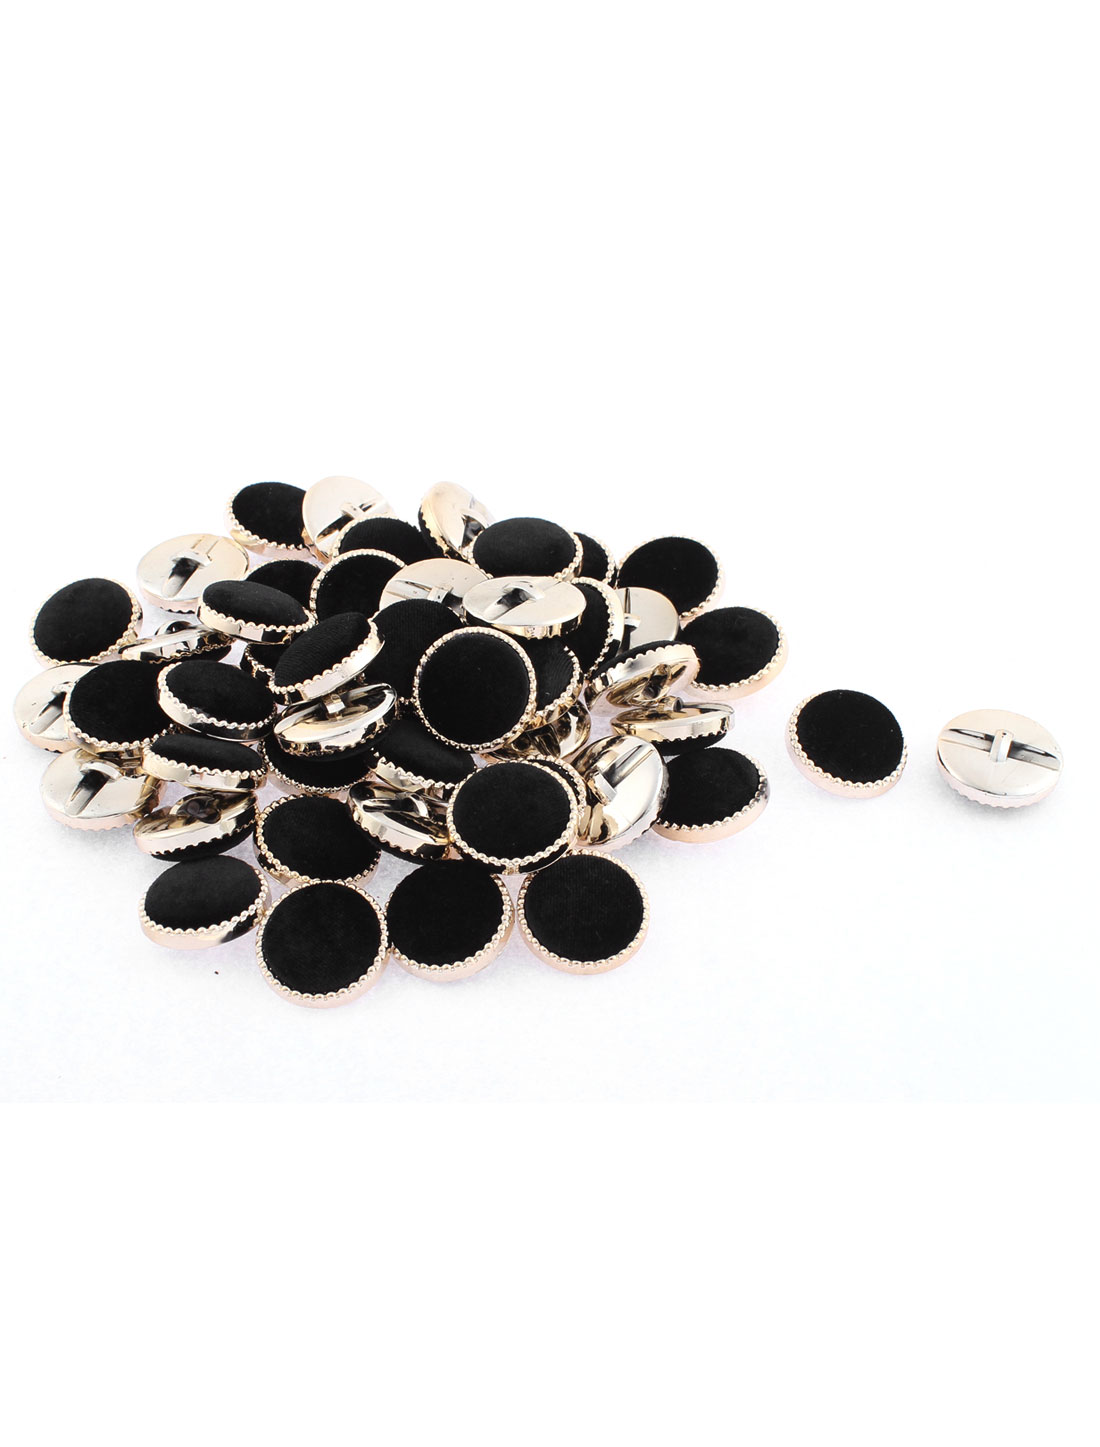 50 Pcs Flannel Round Sewing Buttons 3cm Dia Black for Clothing Coat